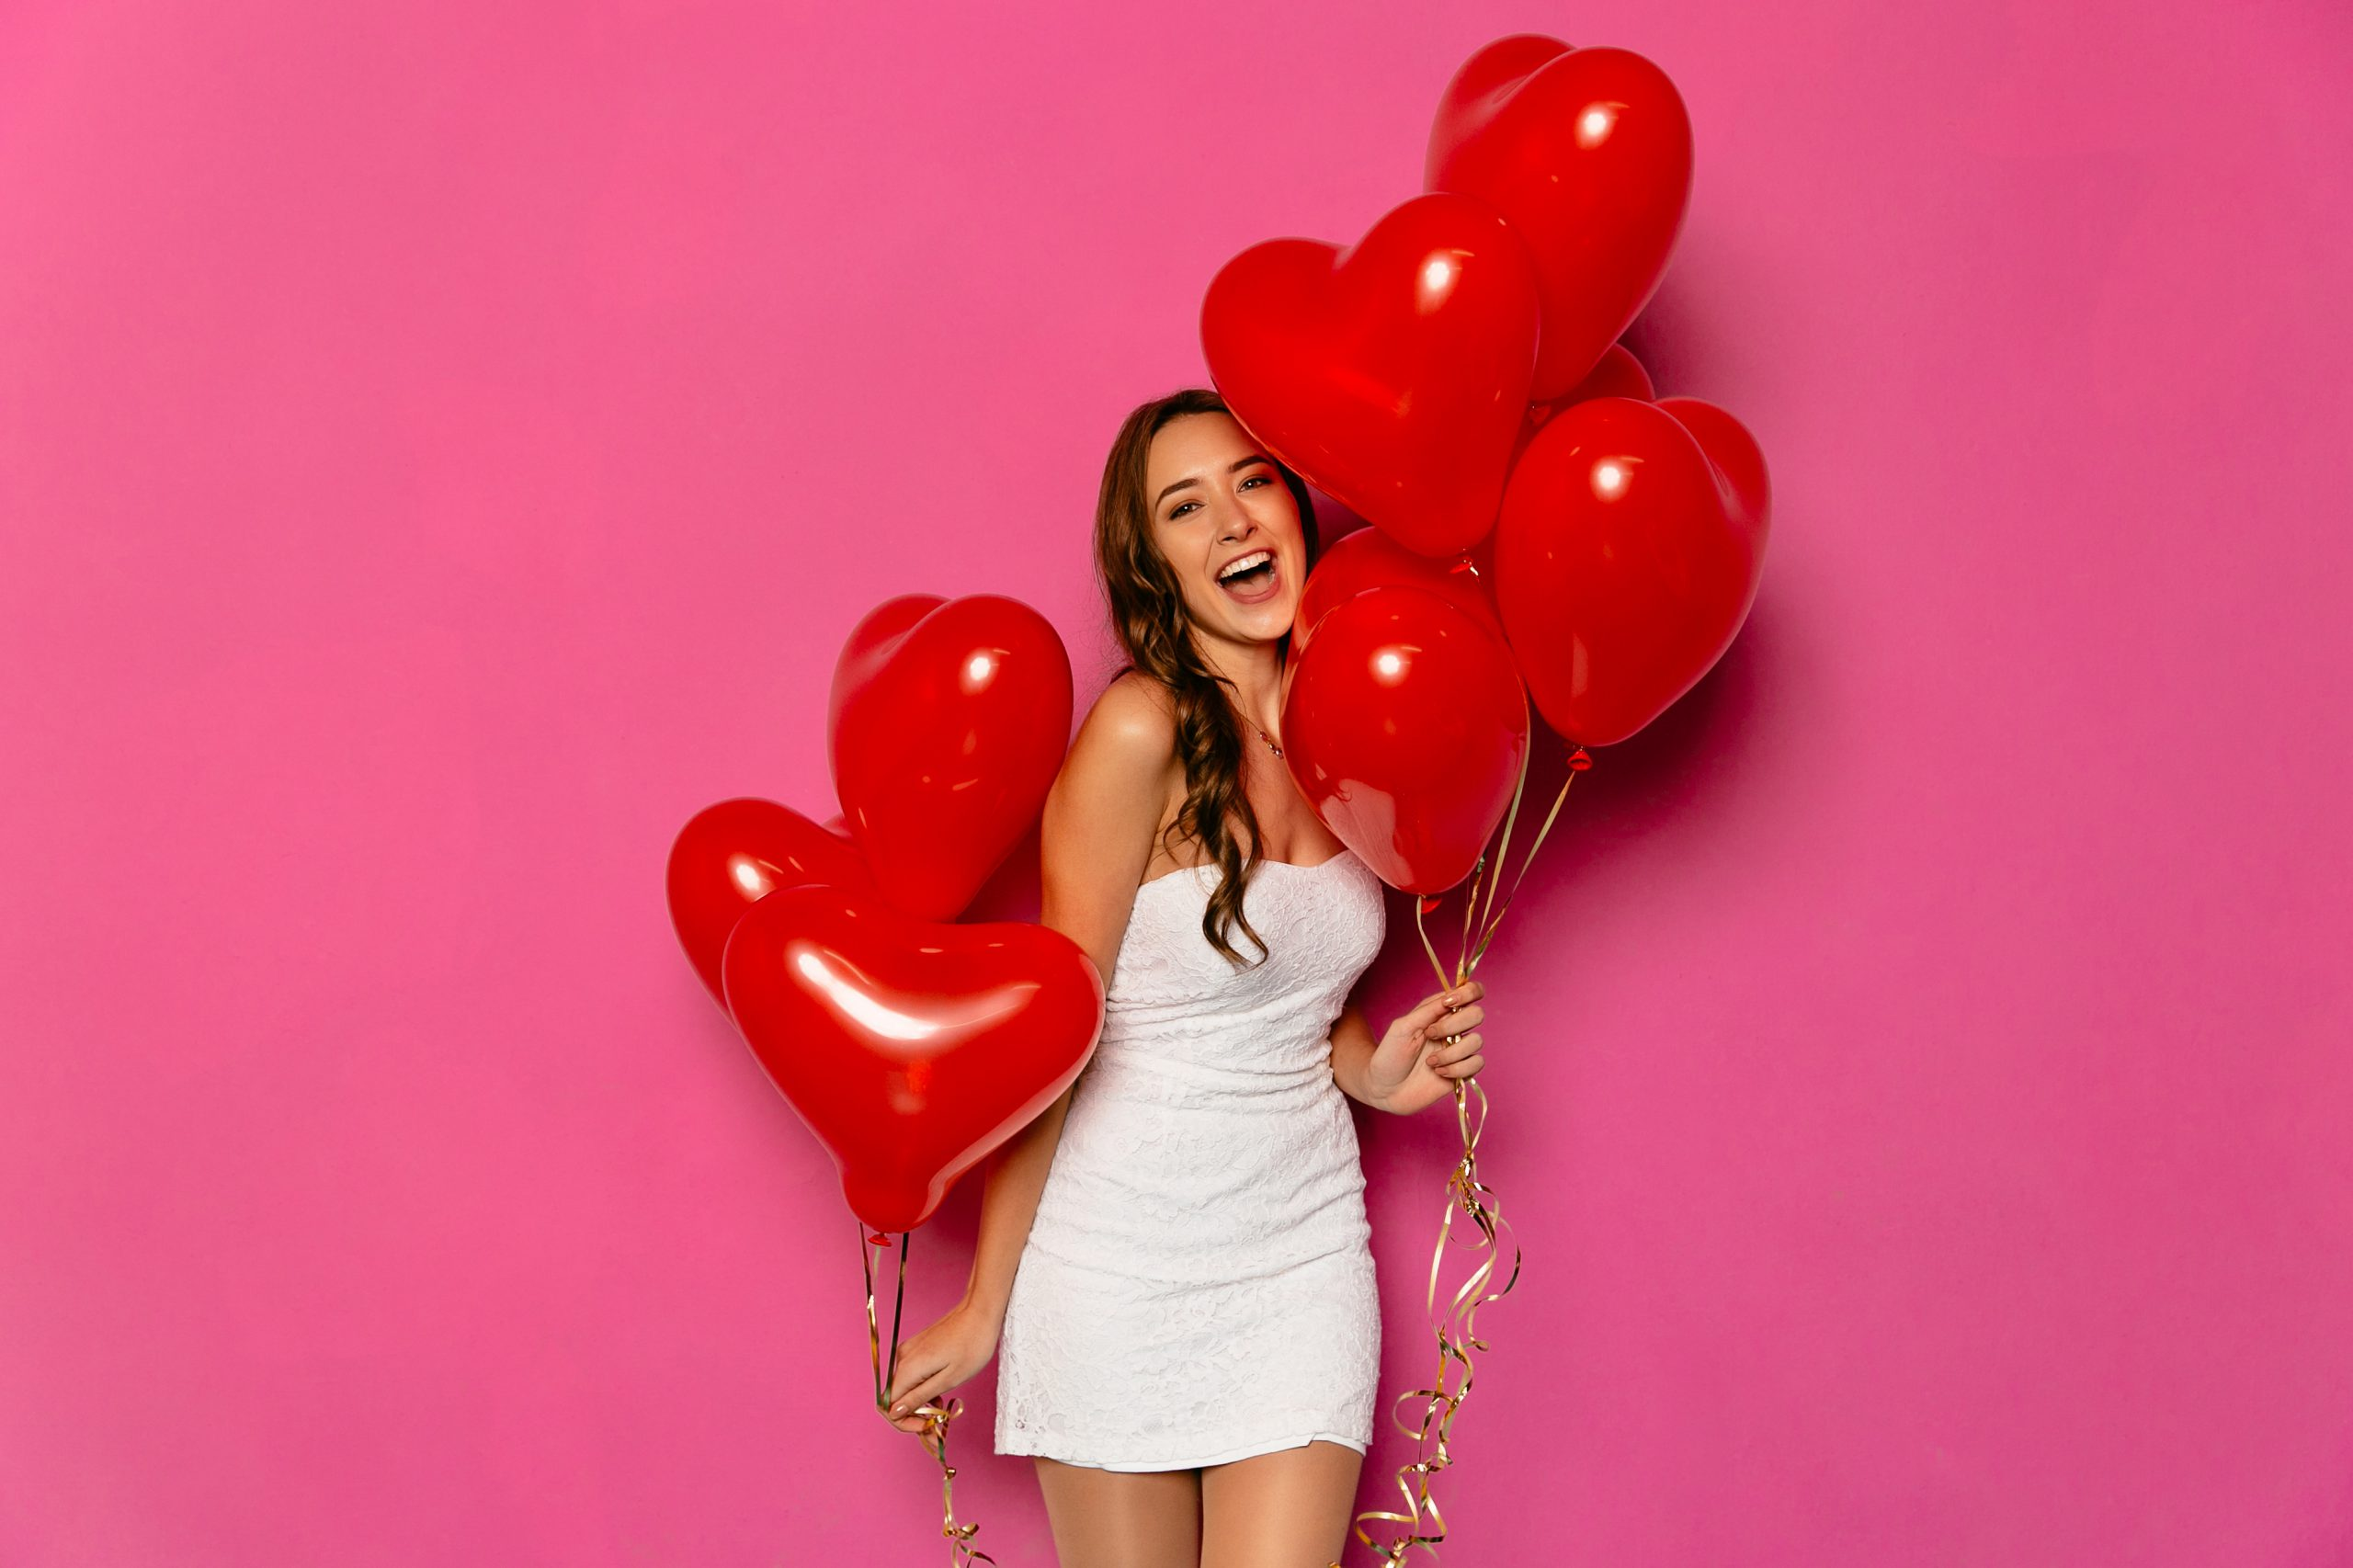 AW 20/21: For All the Heart Reasons! #NewLaunch